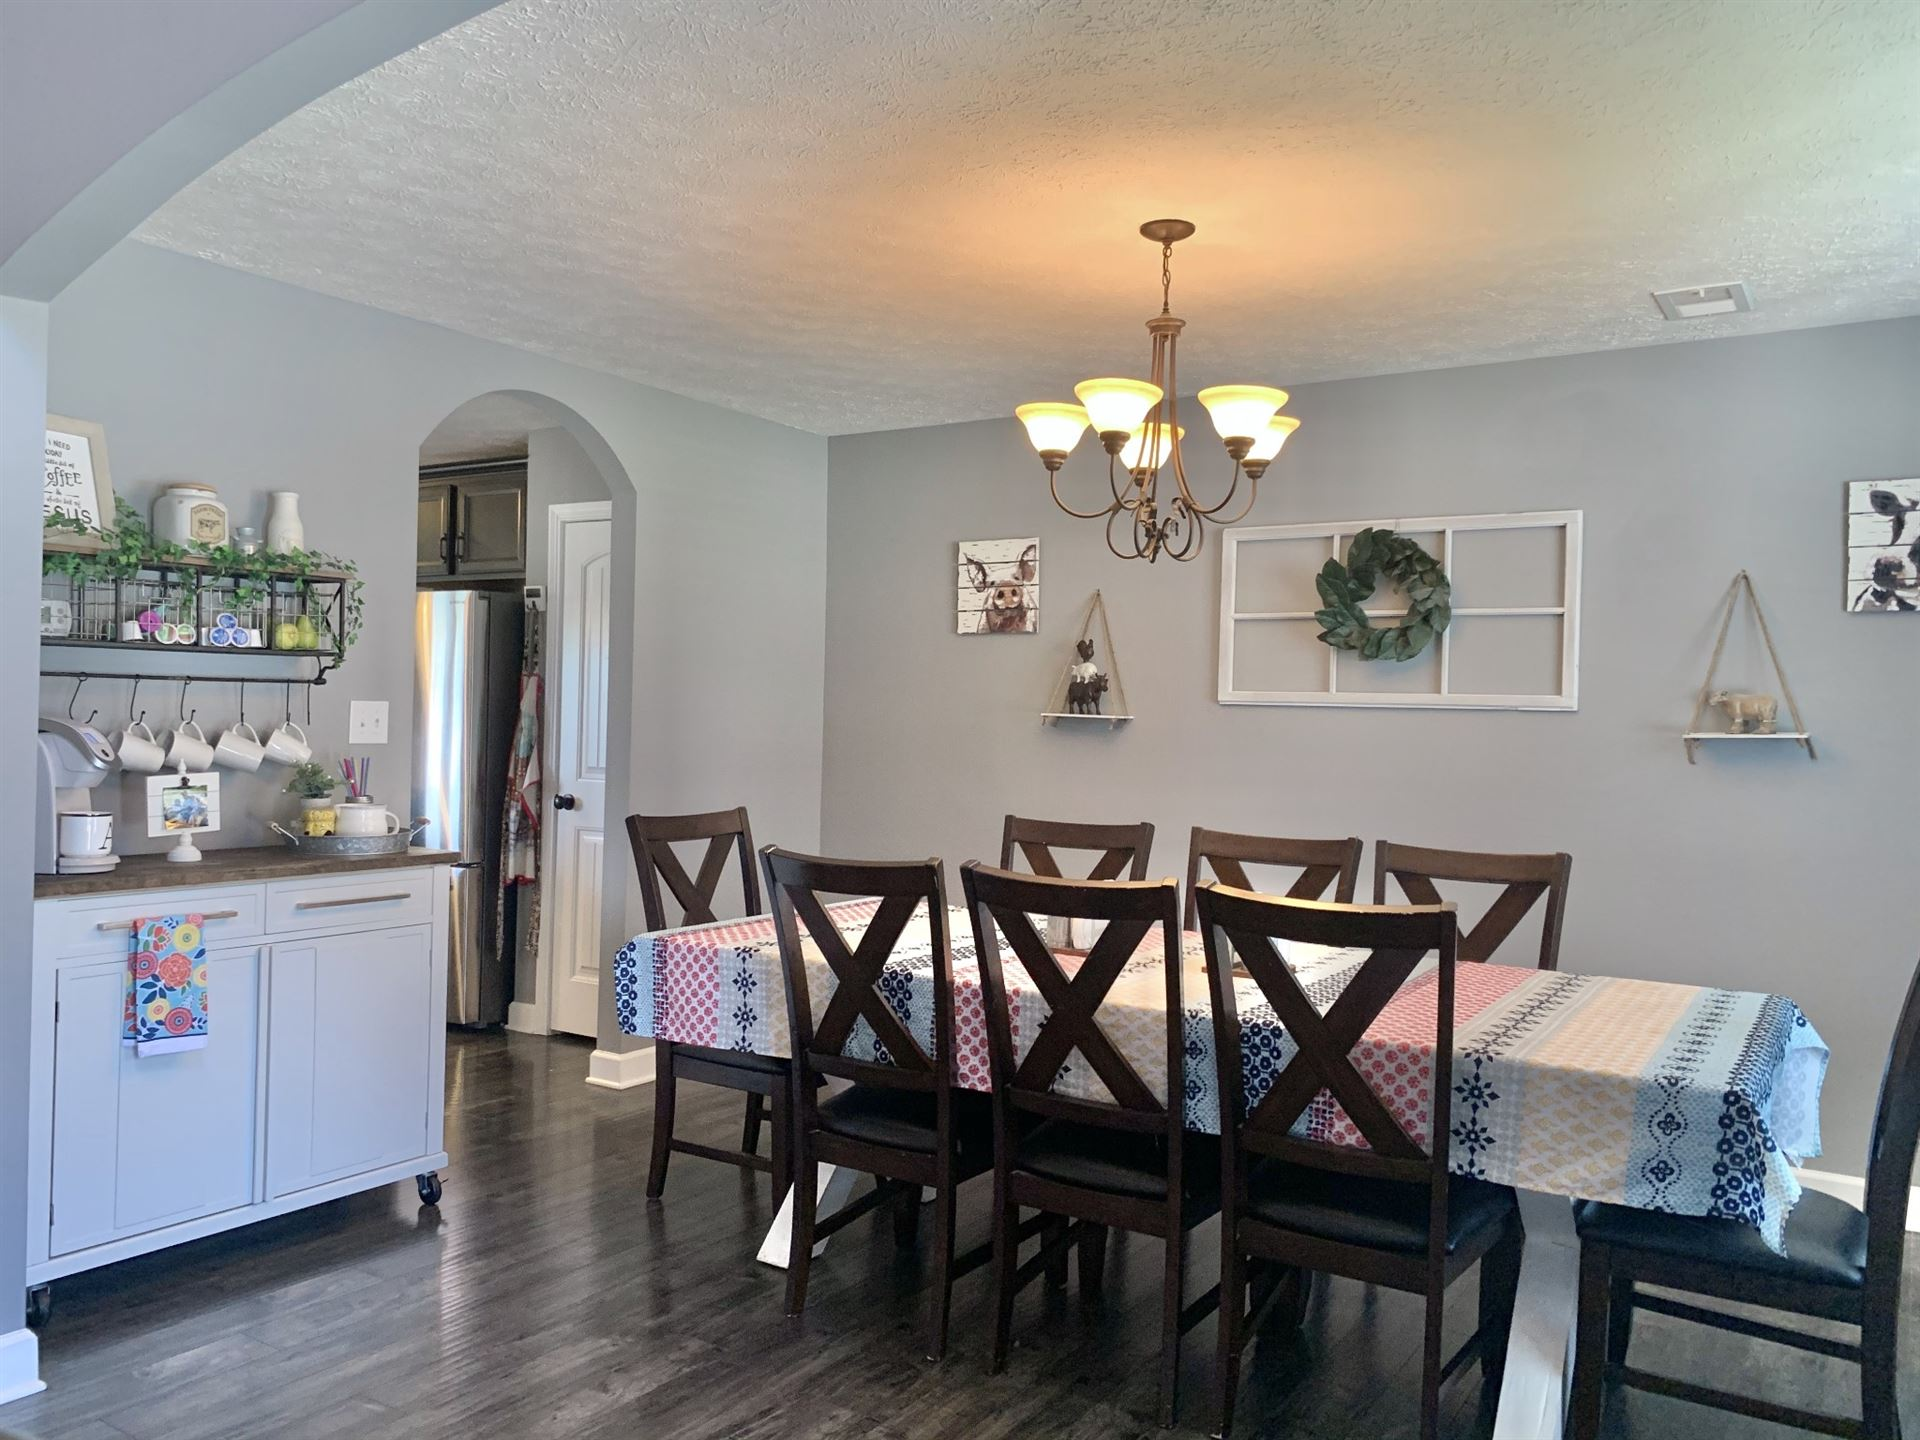 Photo of 1295 Eagles View Dr, Clarksville, TN 37040 (MLS # 2156348)